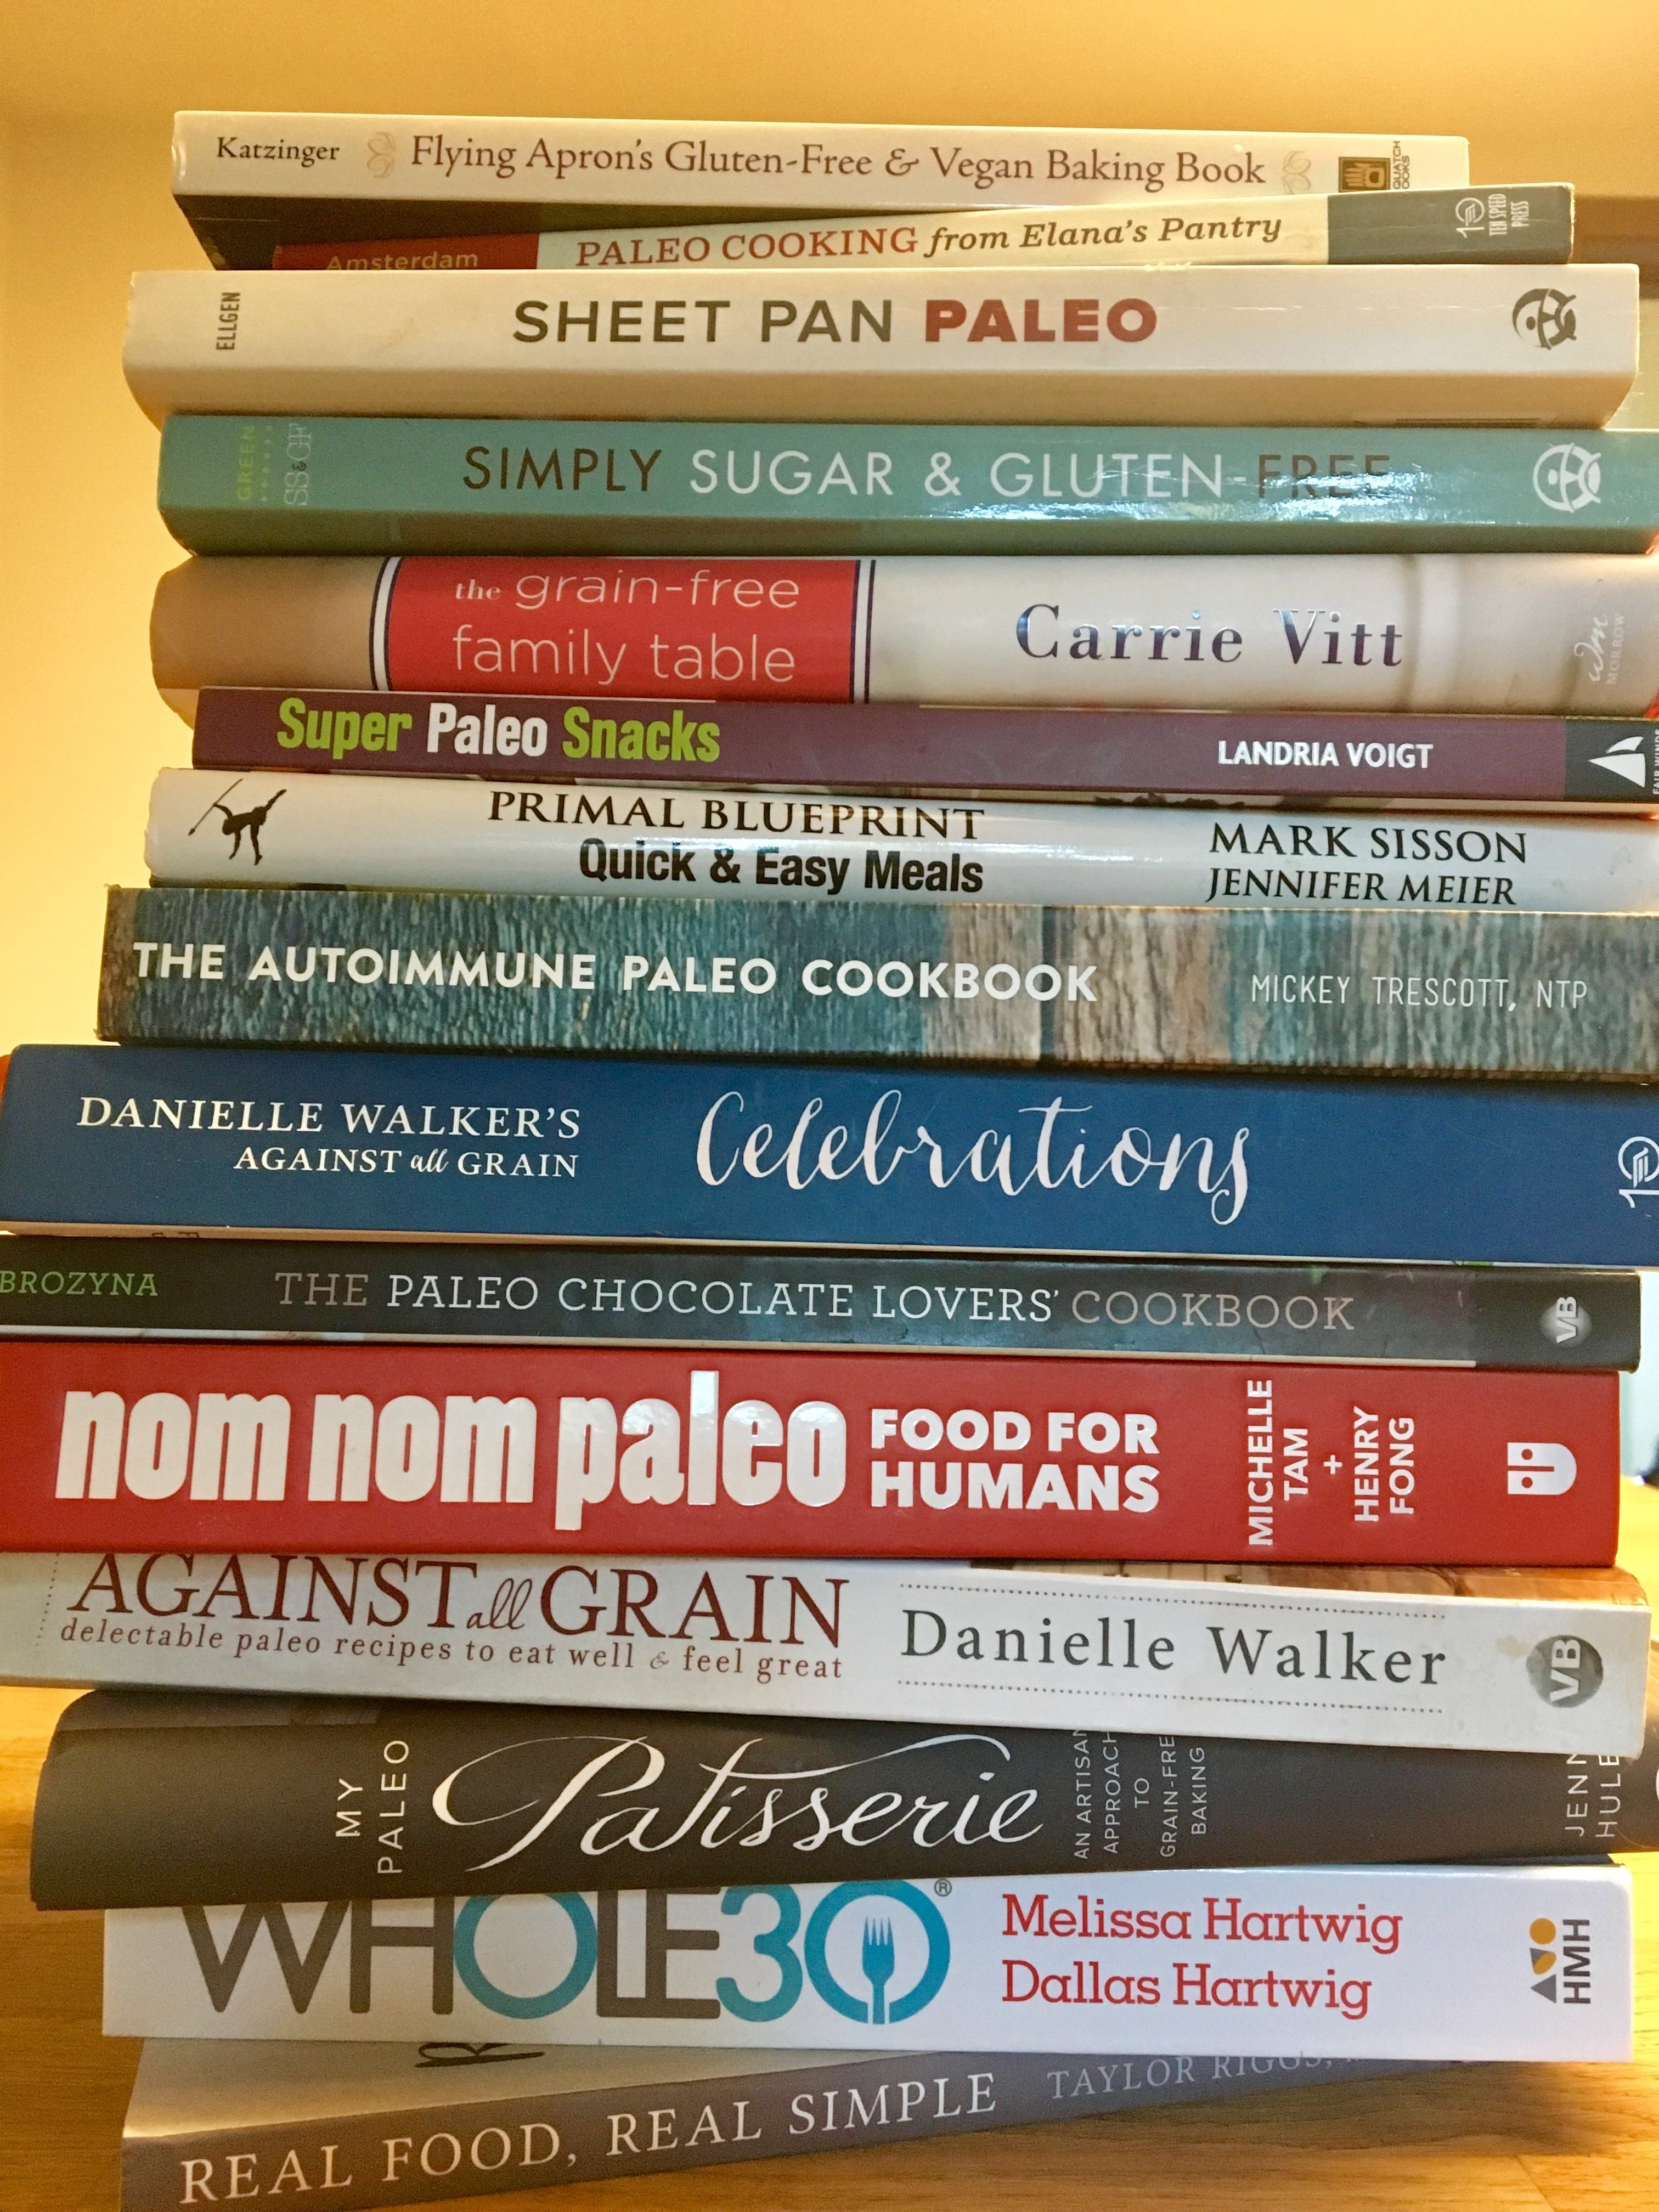 against all grain delectable paleo recipes to eat well feel great